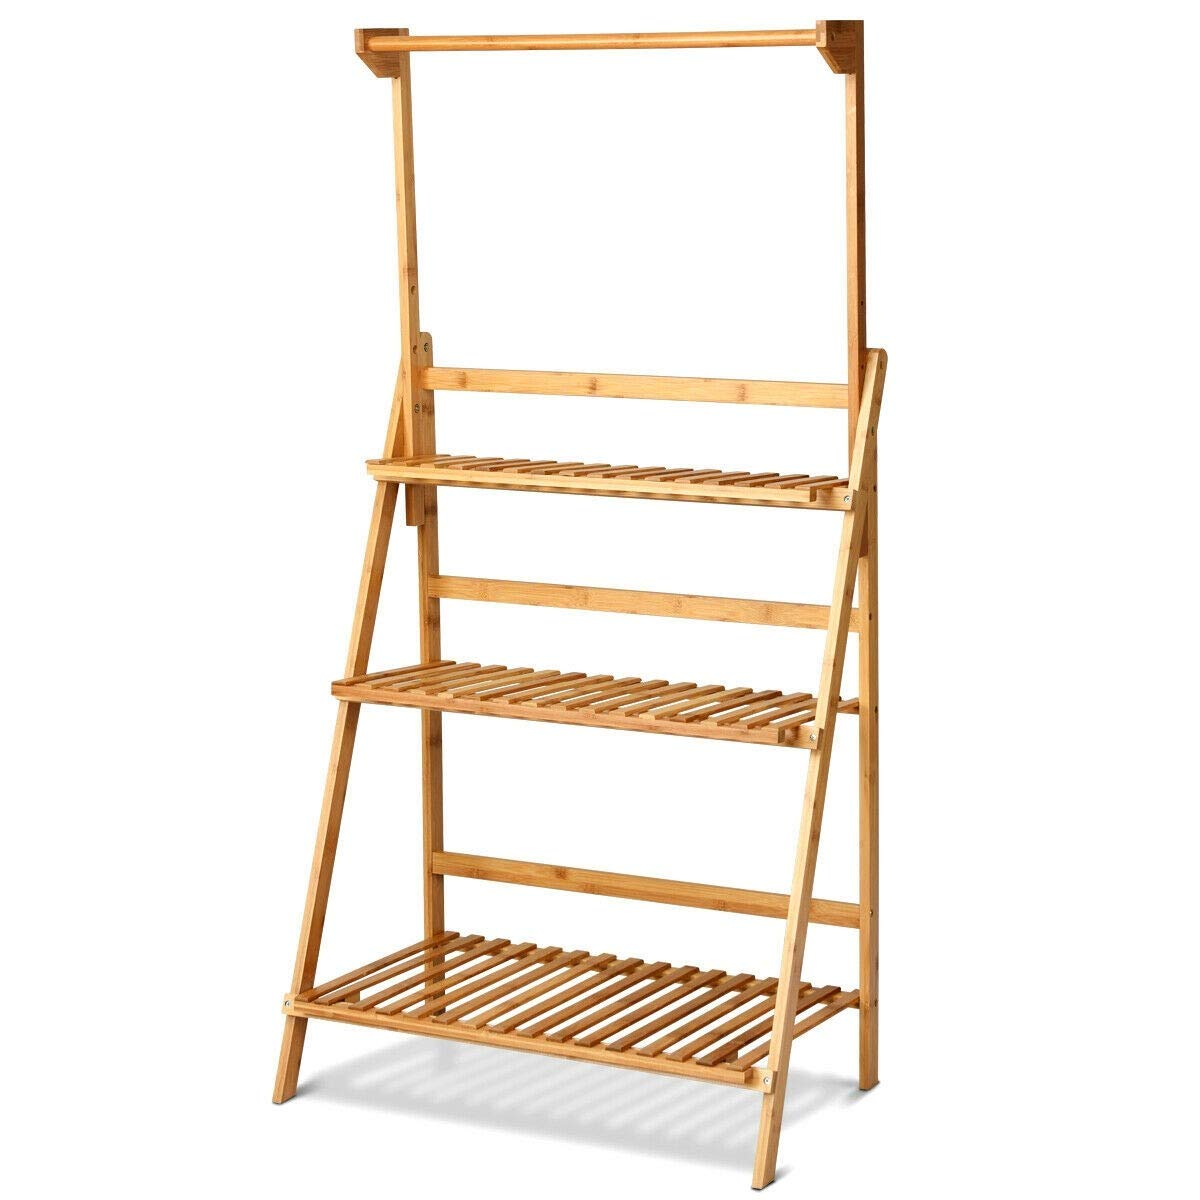 EnjoyShop 3 Tiers Bamboo Hanging Folding Plant Shelf Stand Adjustable and Foldable Design Indoors and Outdoors Use